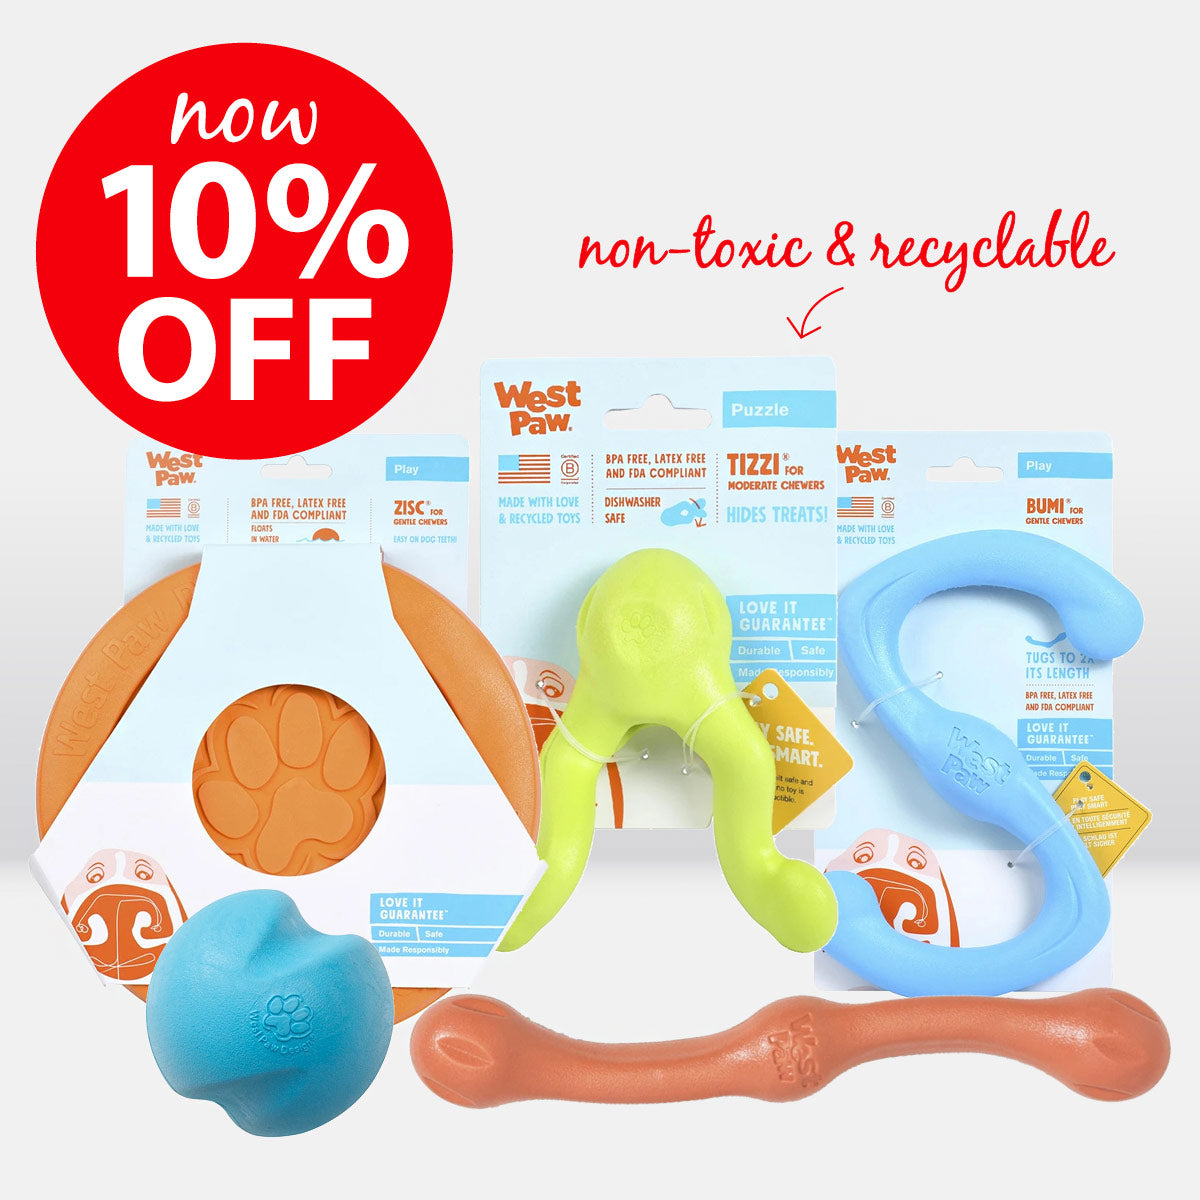 West Paw Dog Toy Range ON SALE